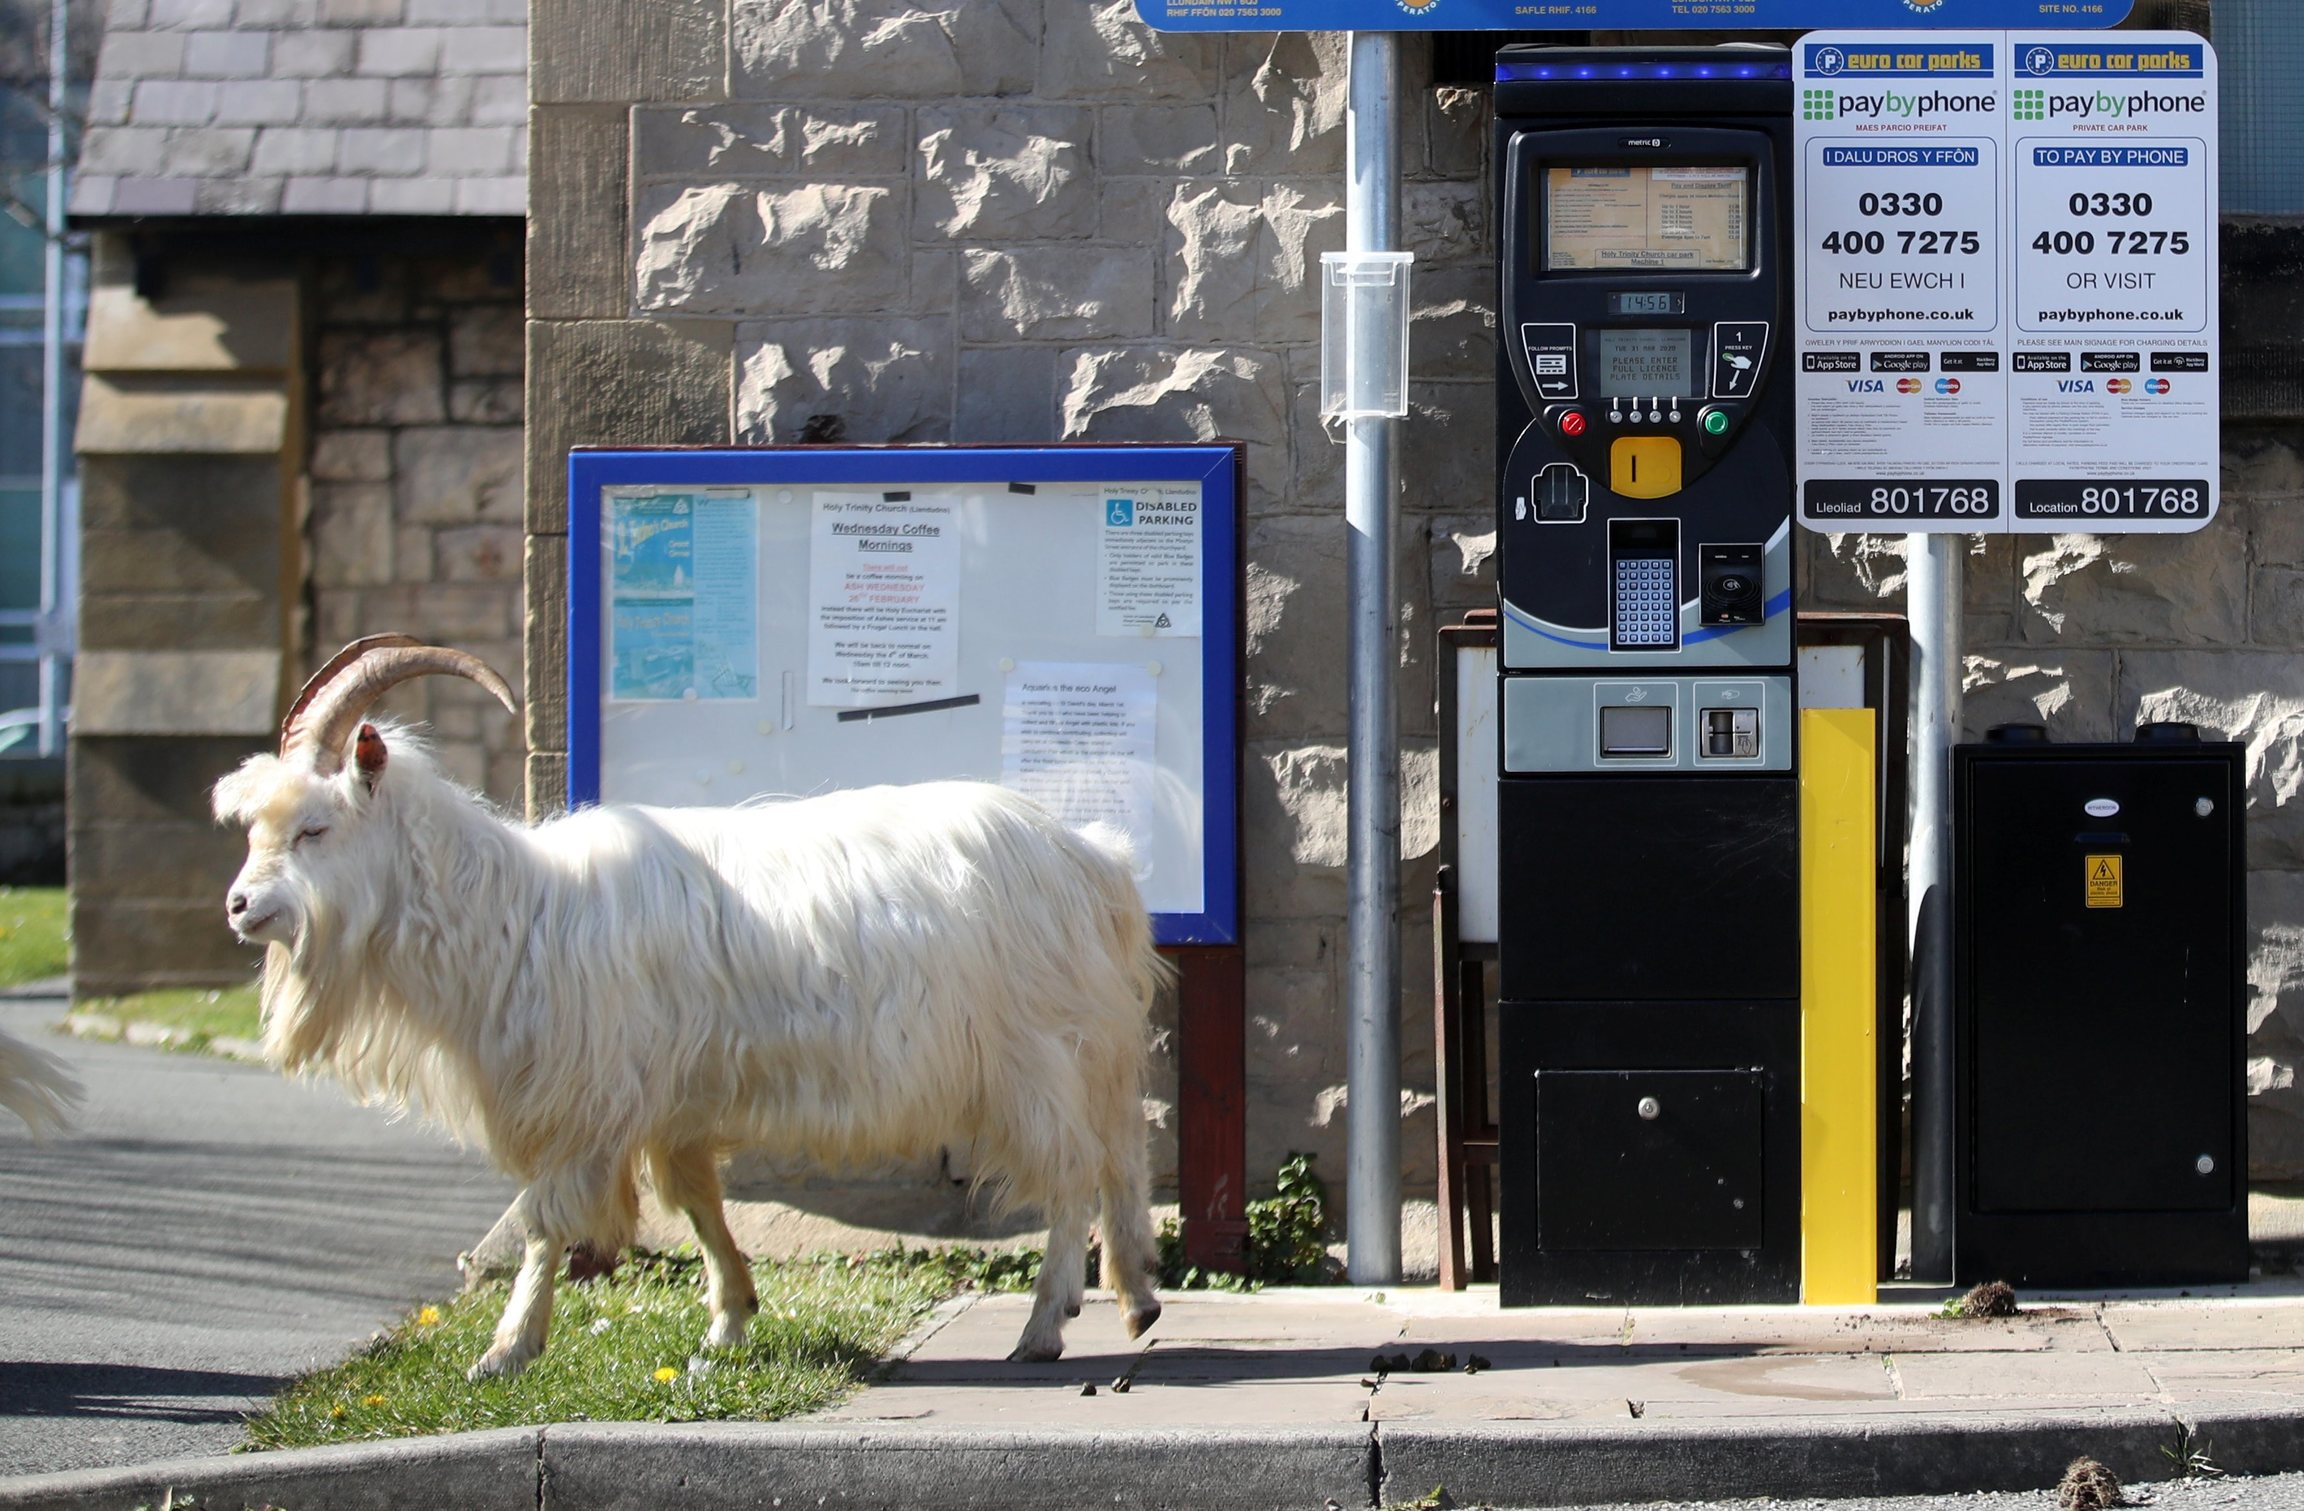 A white goat walks by a parking meter.